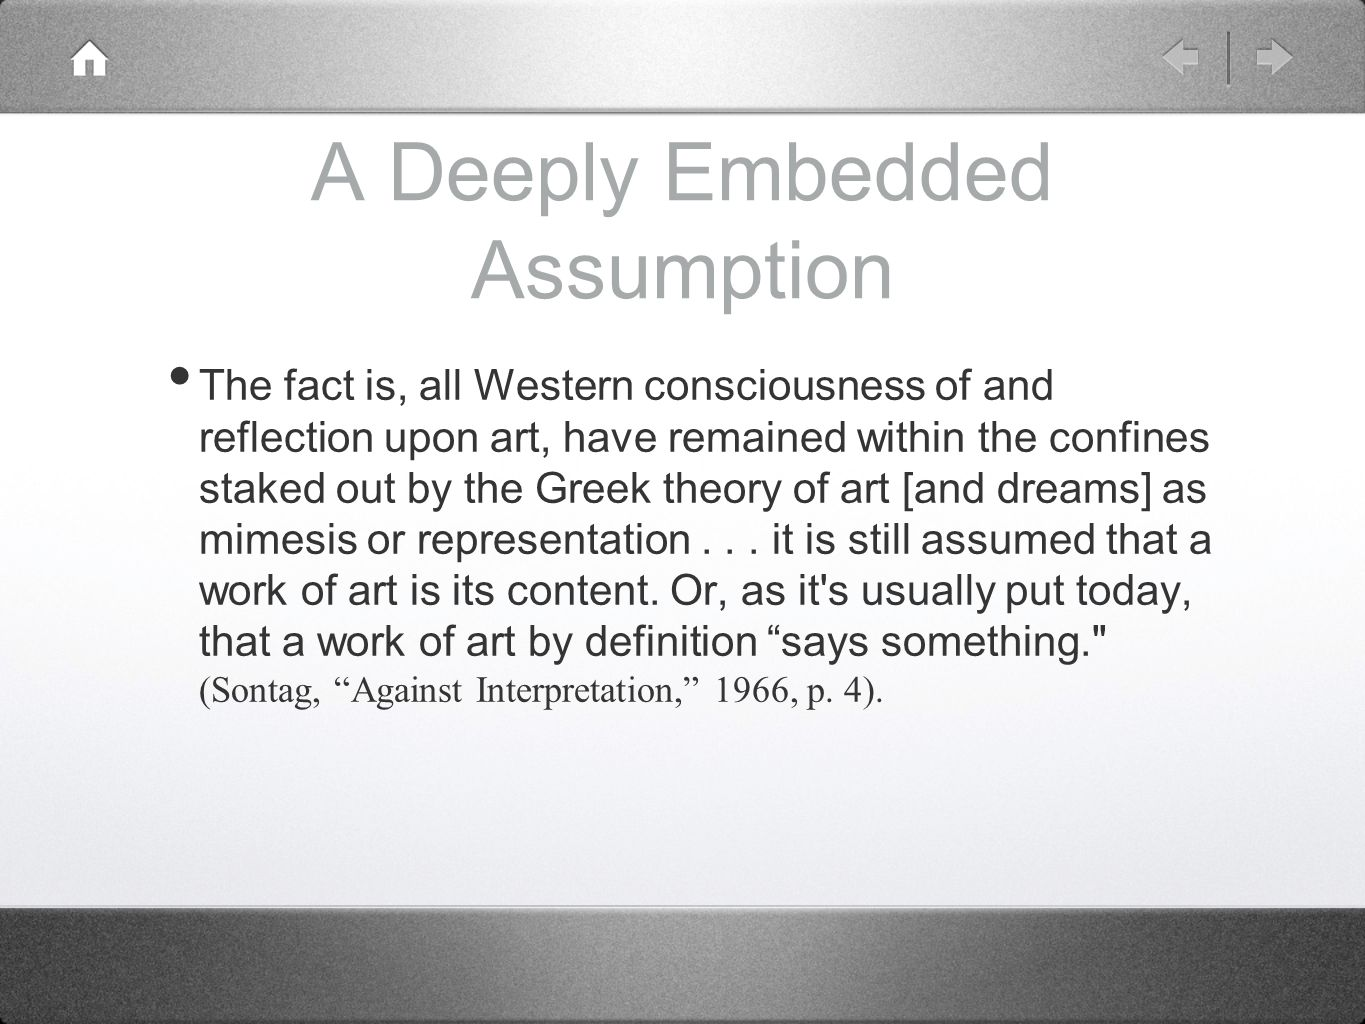 A Deeply Embedded Assumption The fact is, all Western consciousness of and reflection upon art, have remained within the confines staked out by the Greek theory of art [and dreams] as mimesis or representation...